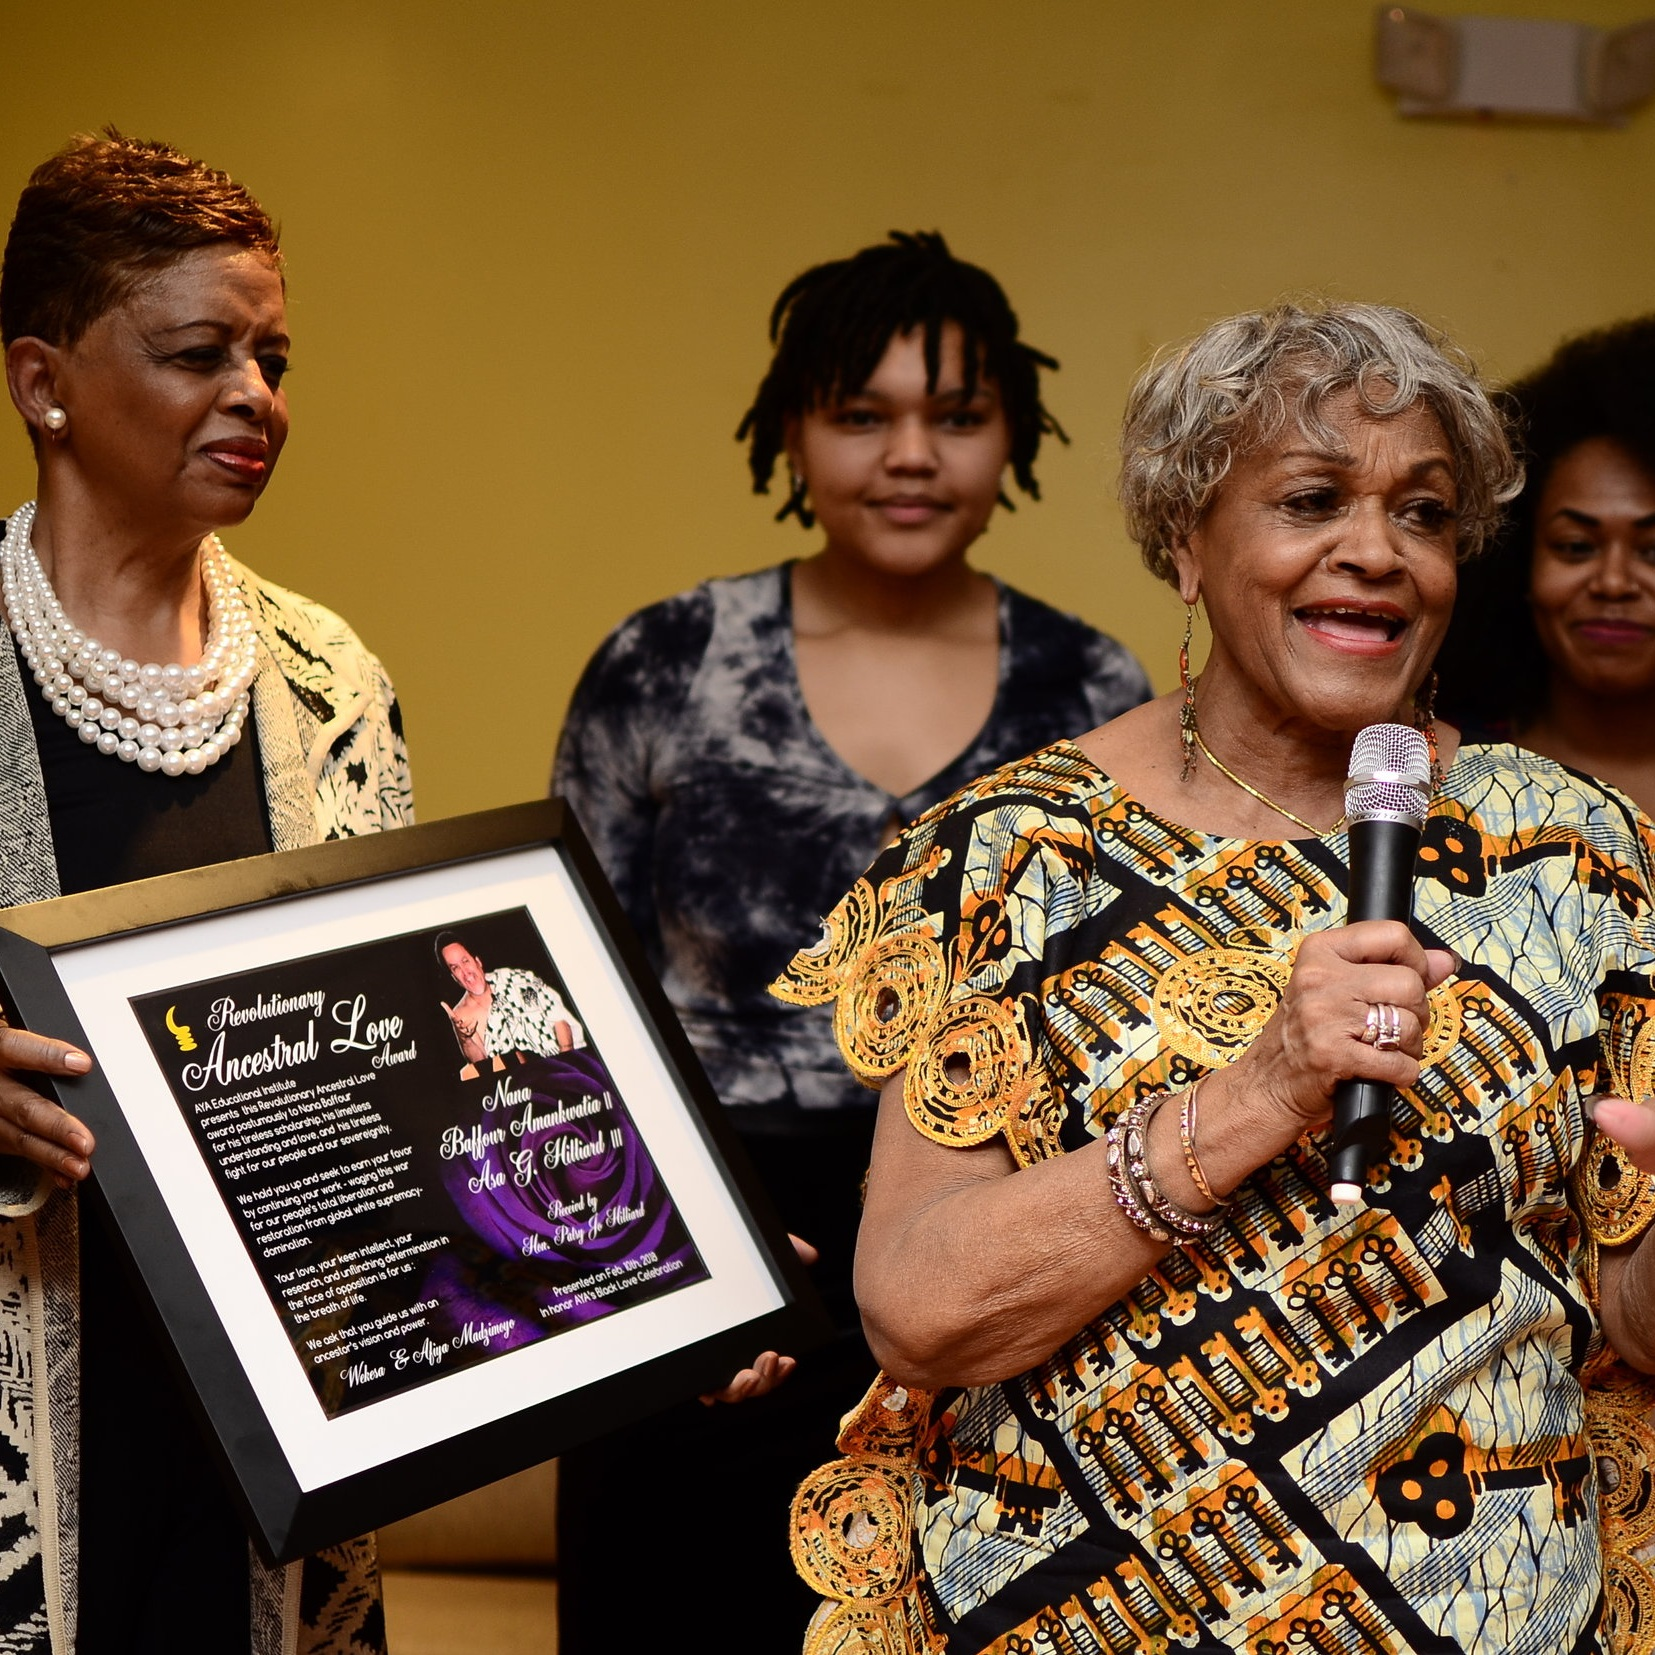 Ancestral Love Award - Asa Hilliard - Accepted by his Wife Patsy Jo Morrison Hilliard  and family.